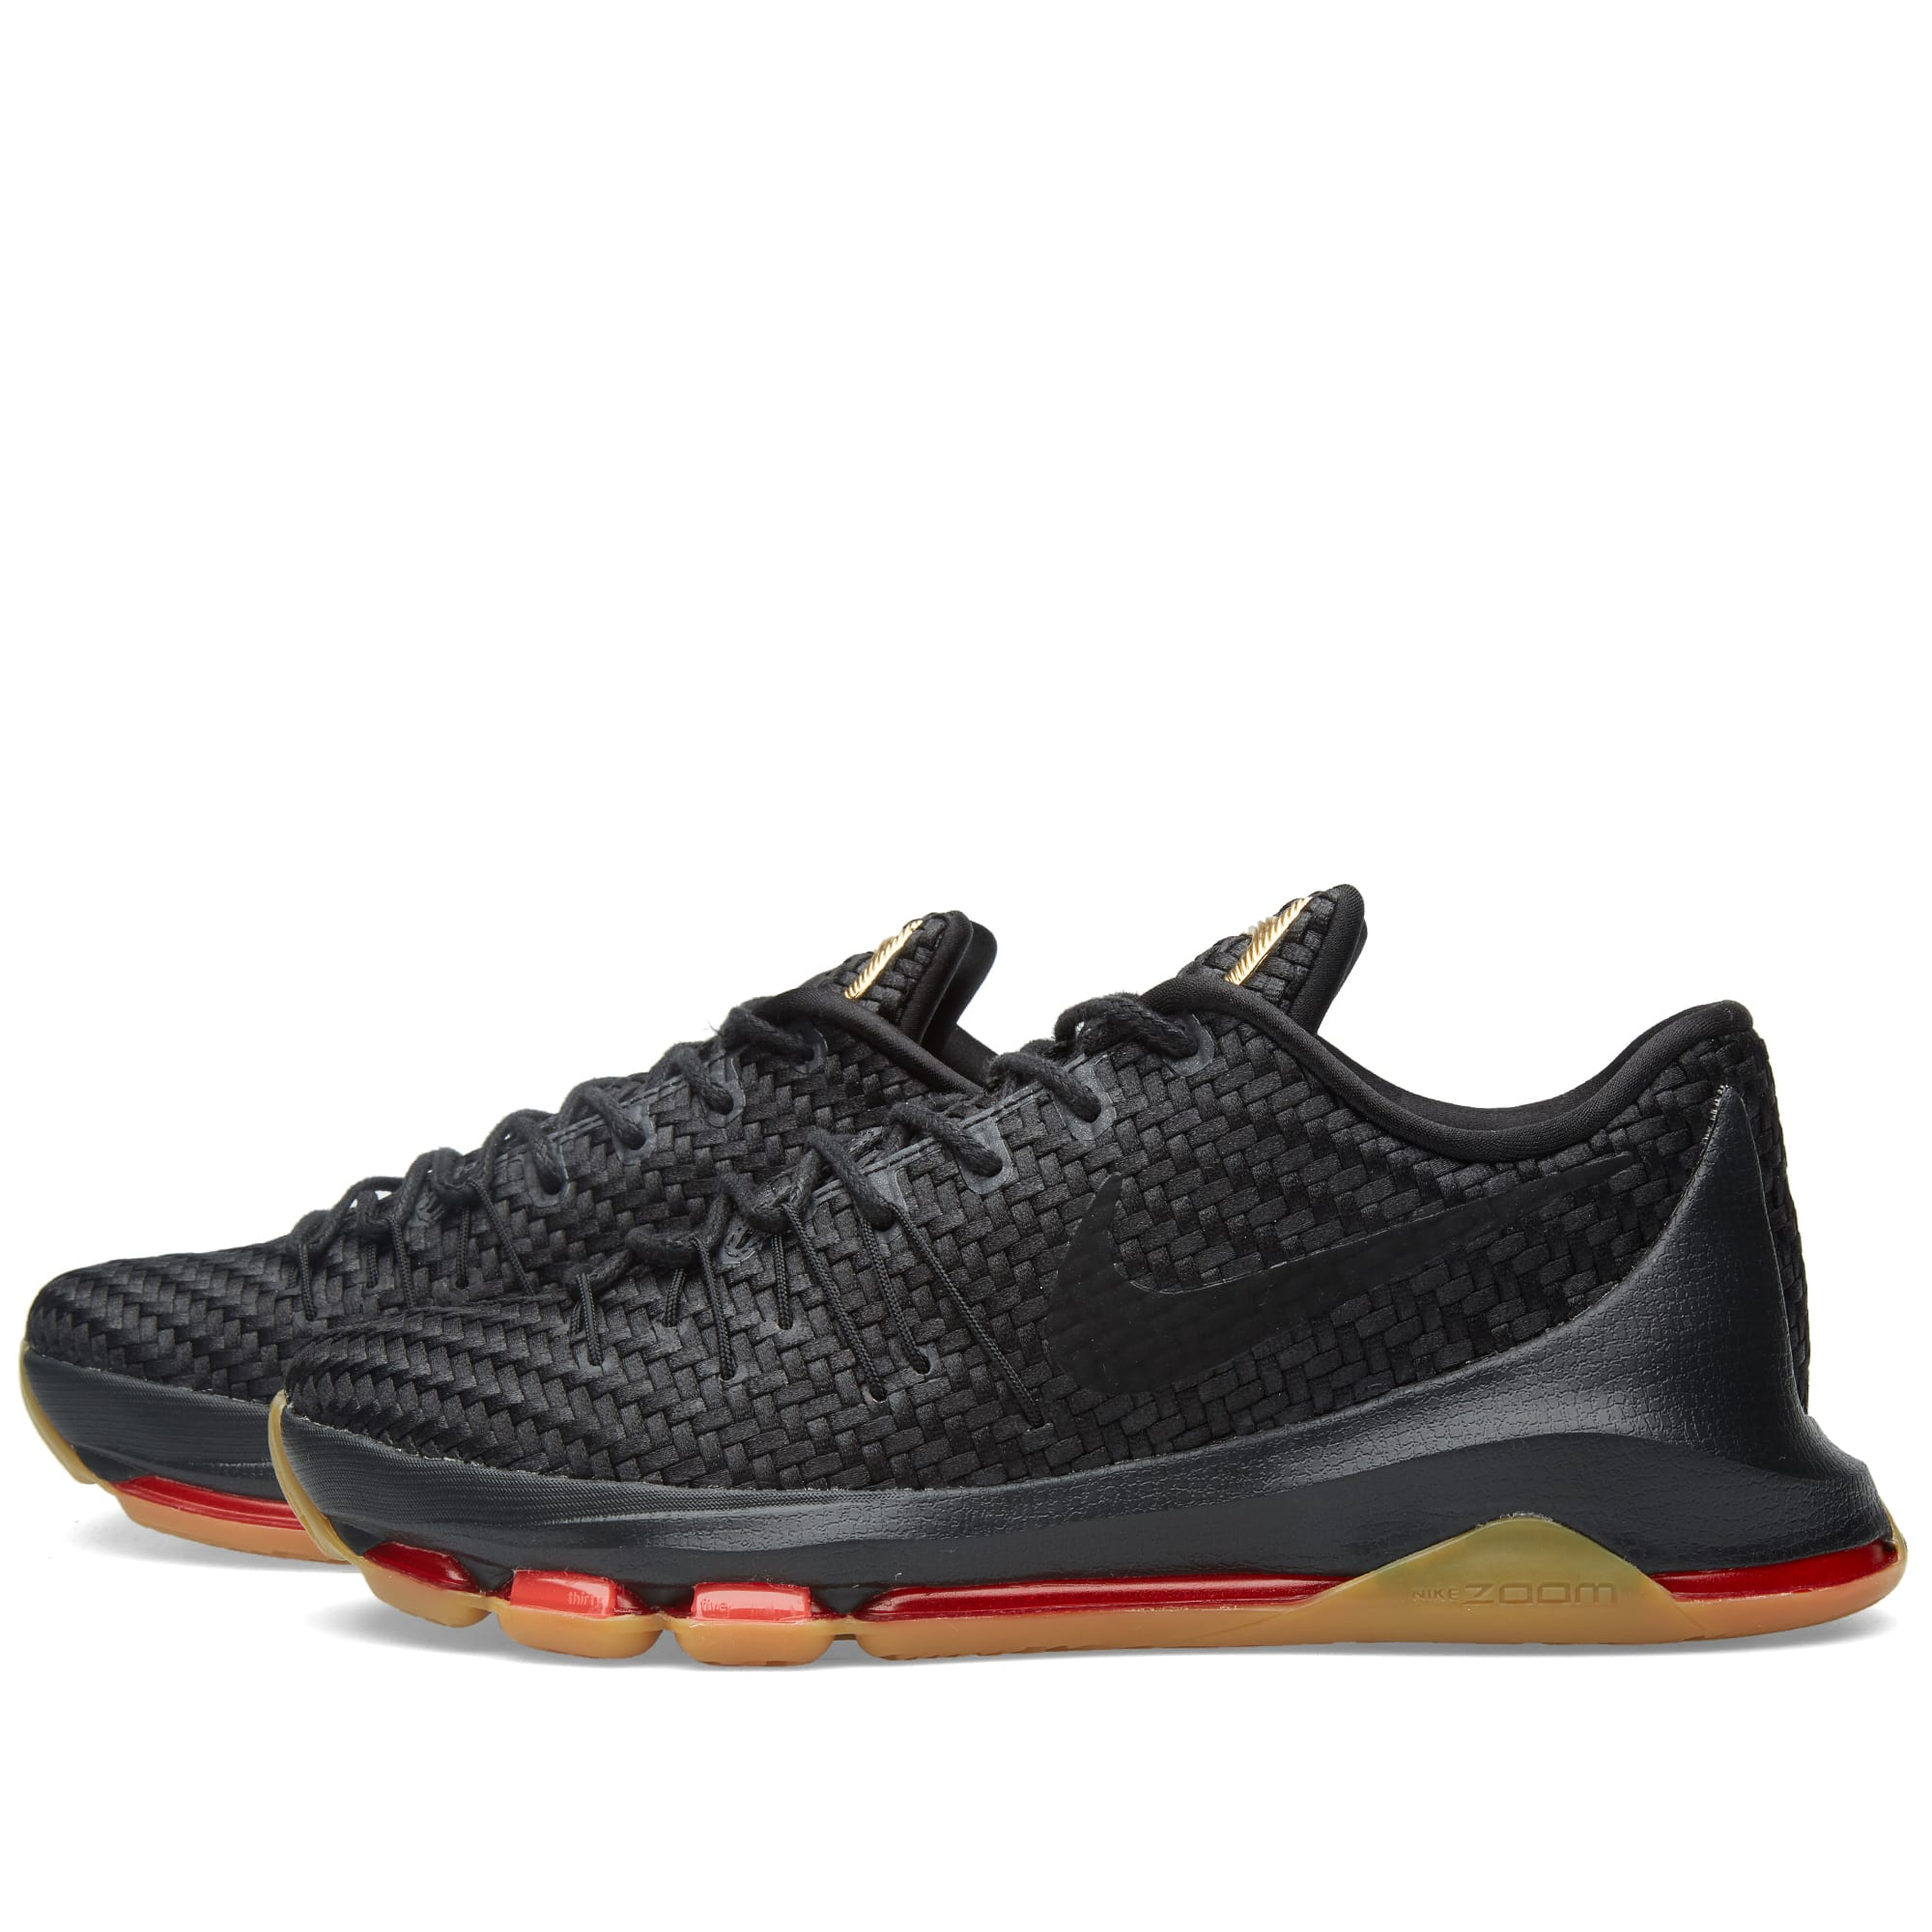 quality design 3c6bc e5710 Nike KD 8 EXT 'Black Gum'